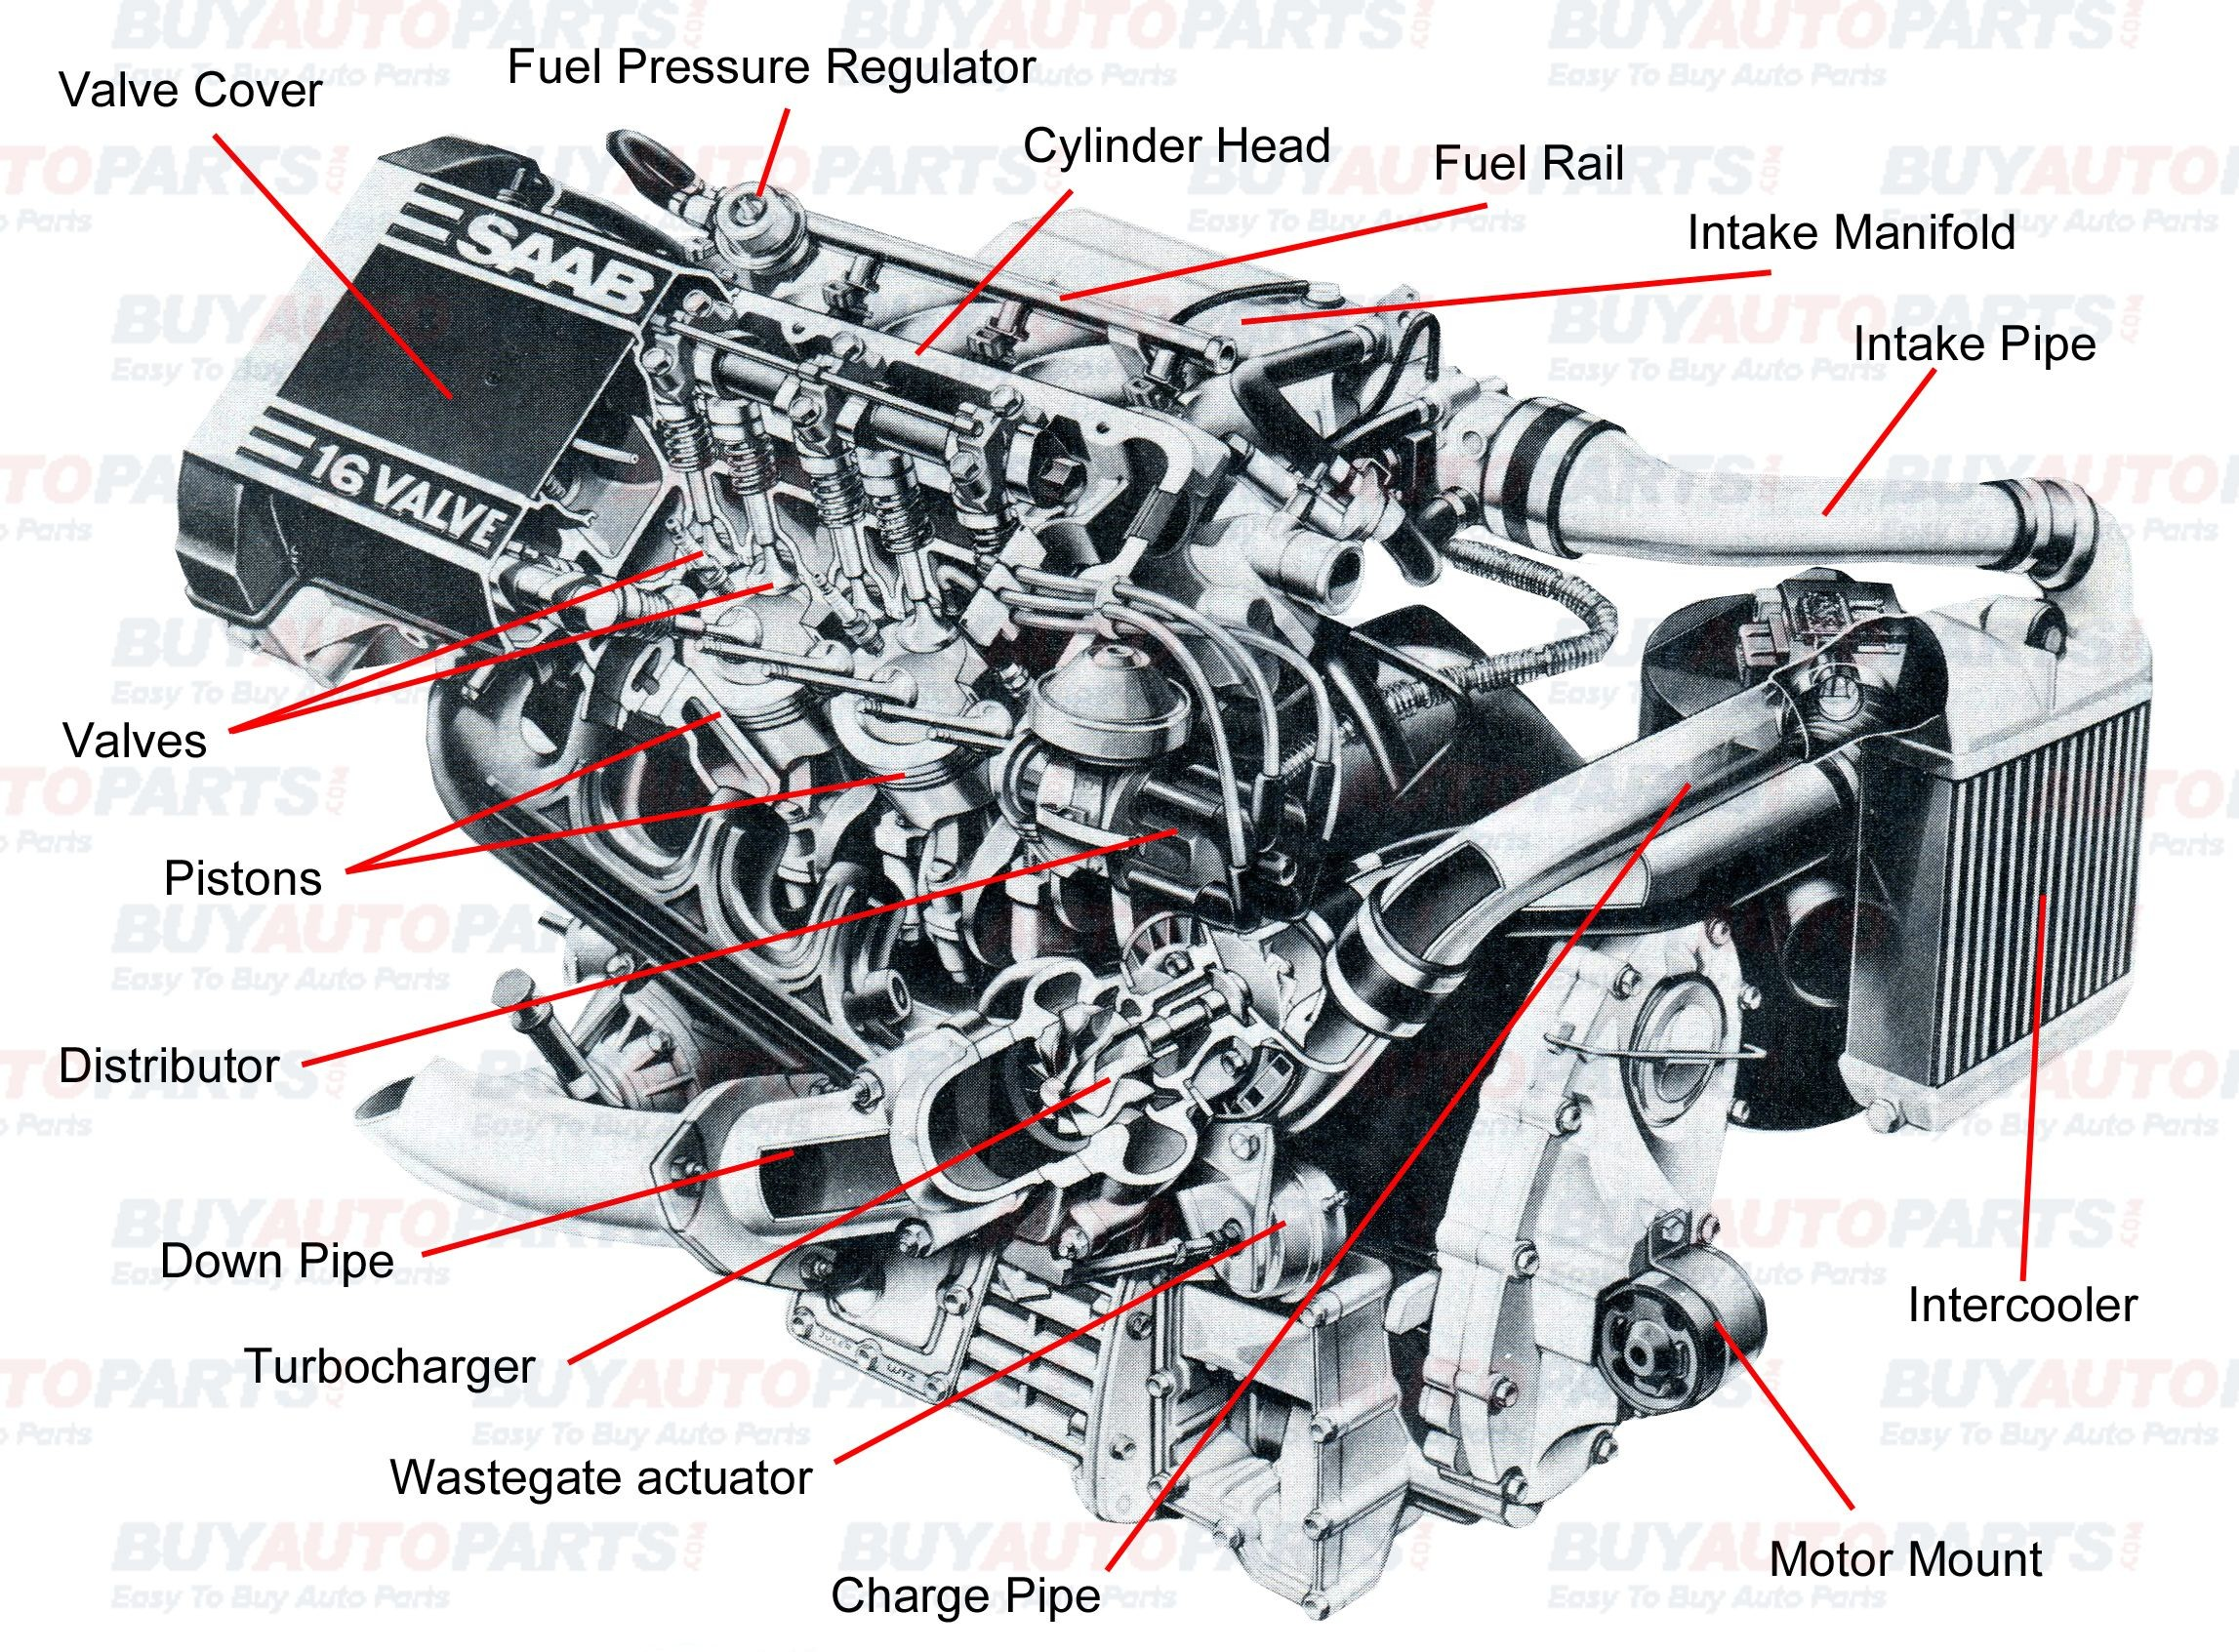 Basic Car Parts Diagram Pin by Jimmiejanet Testellamwfz On What Does An Engine with Turbo Of Basic Car Parts Diagram